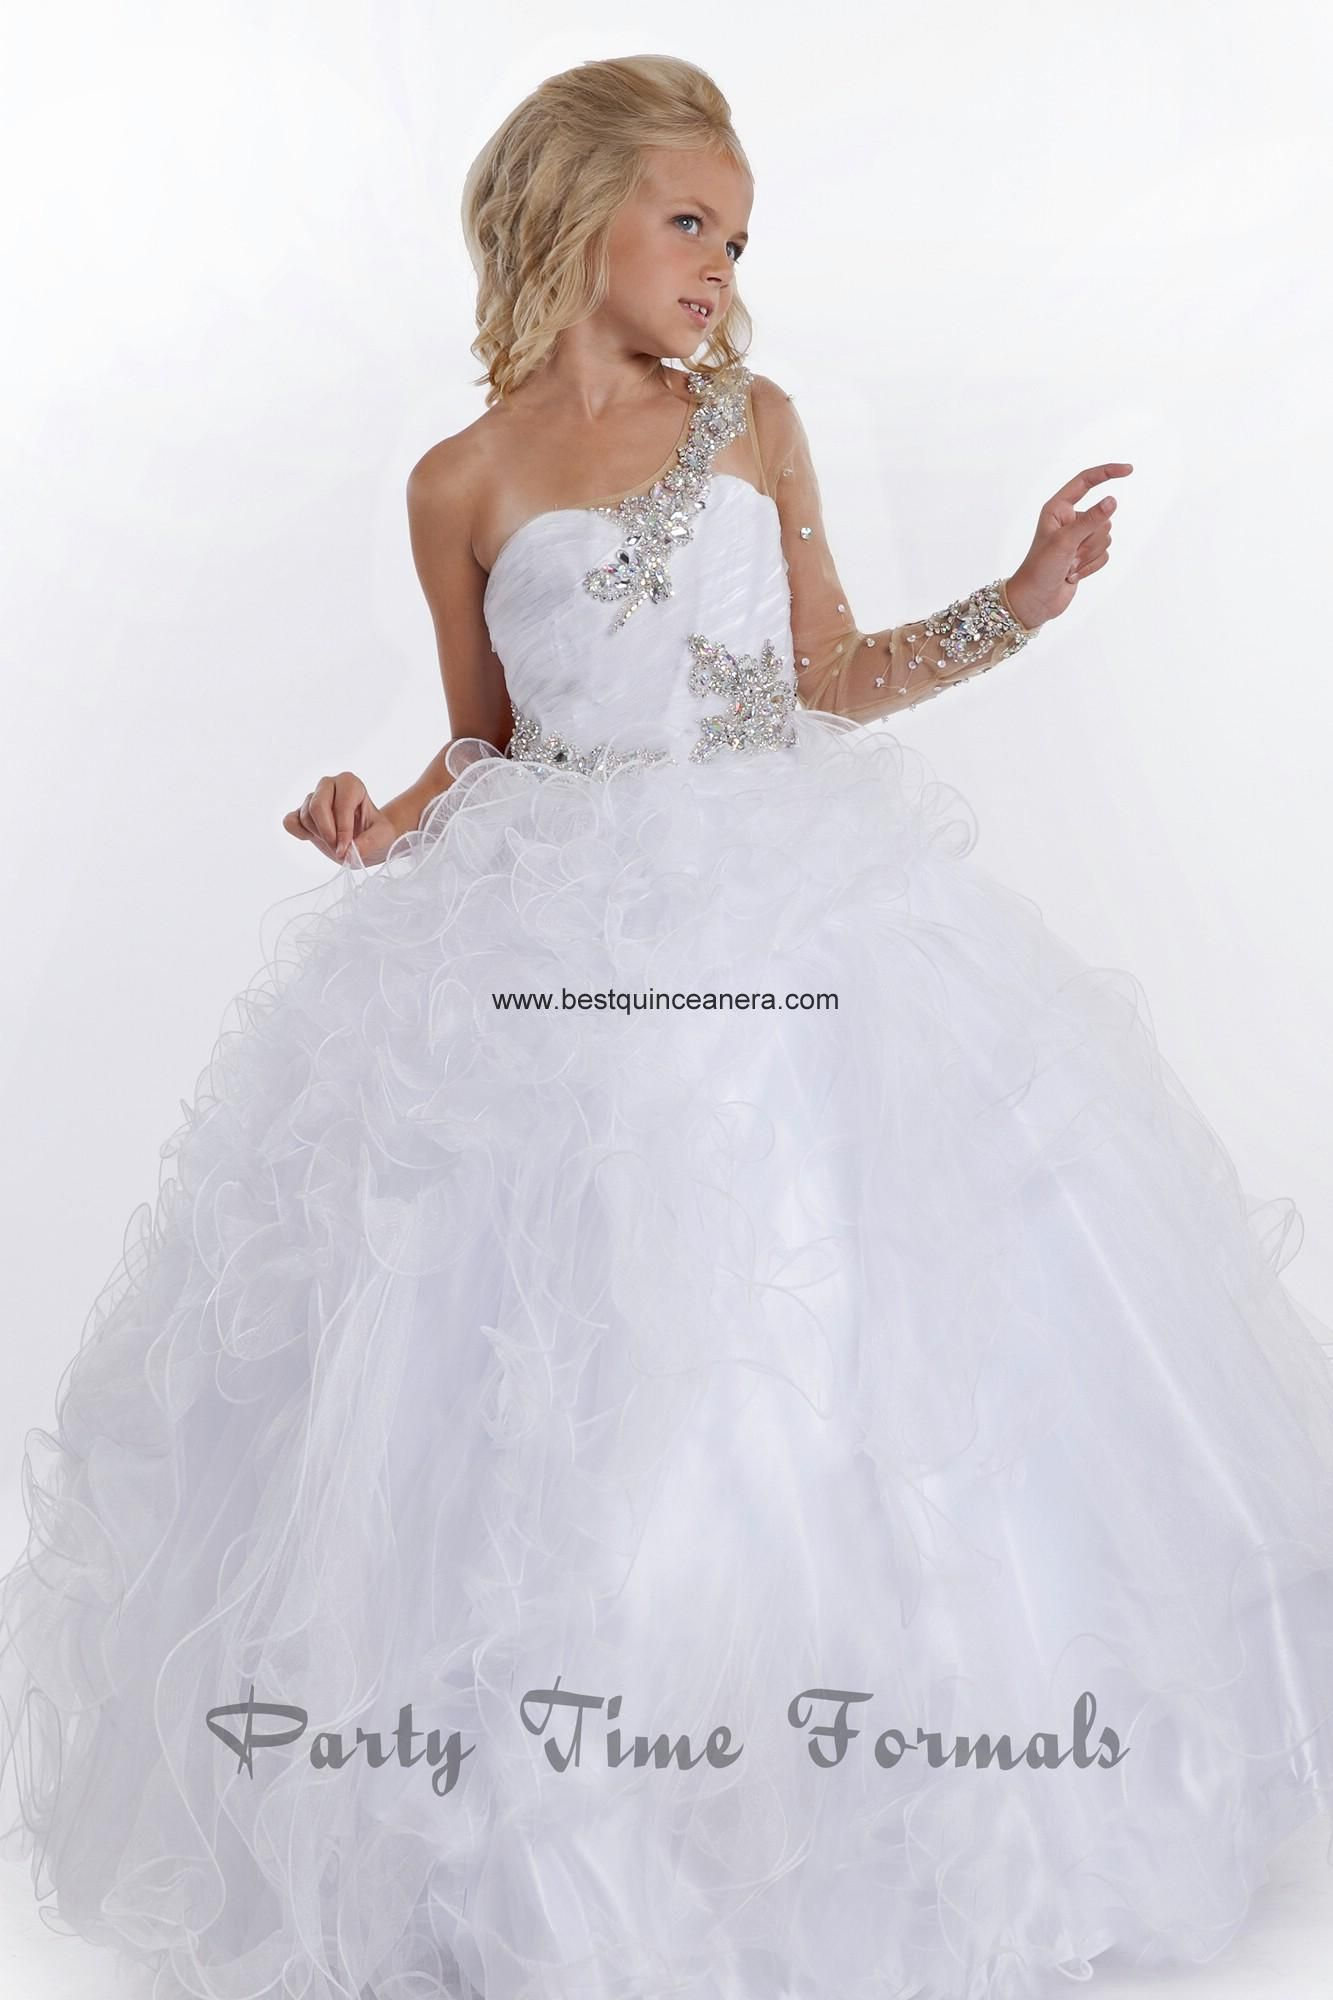 Rent pageant dresses uk cheap